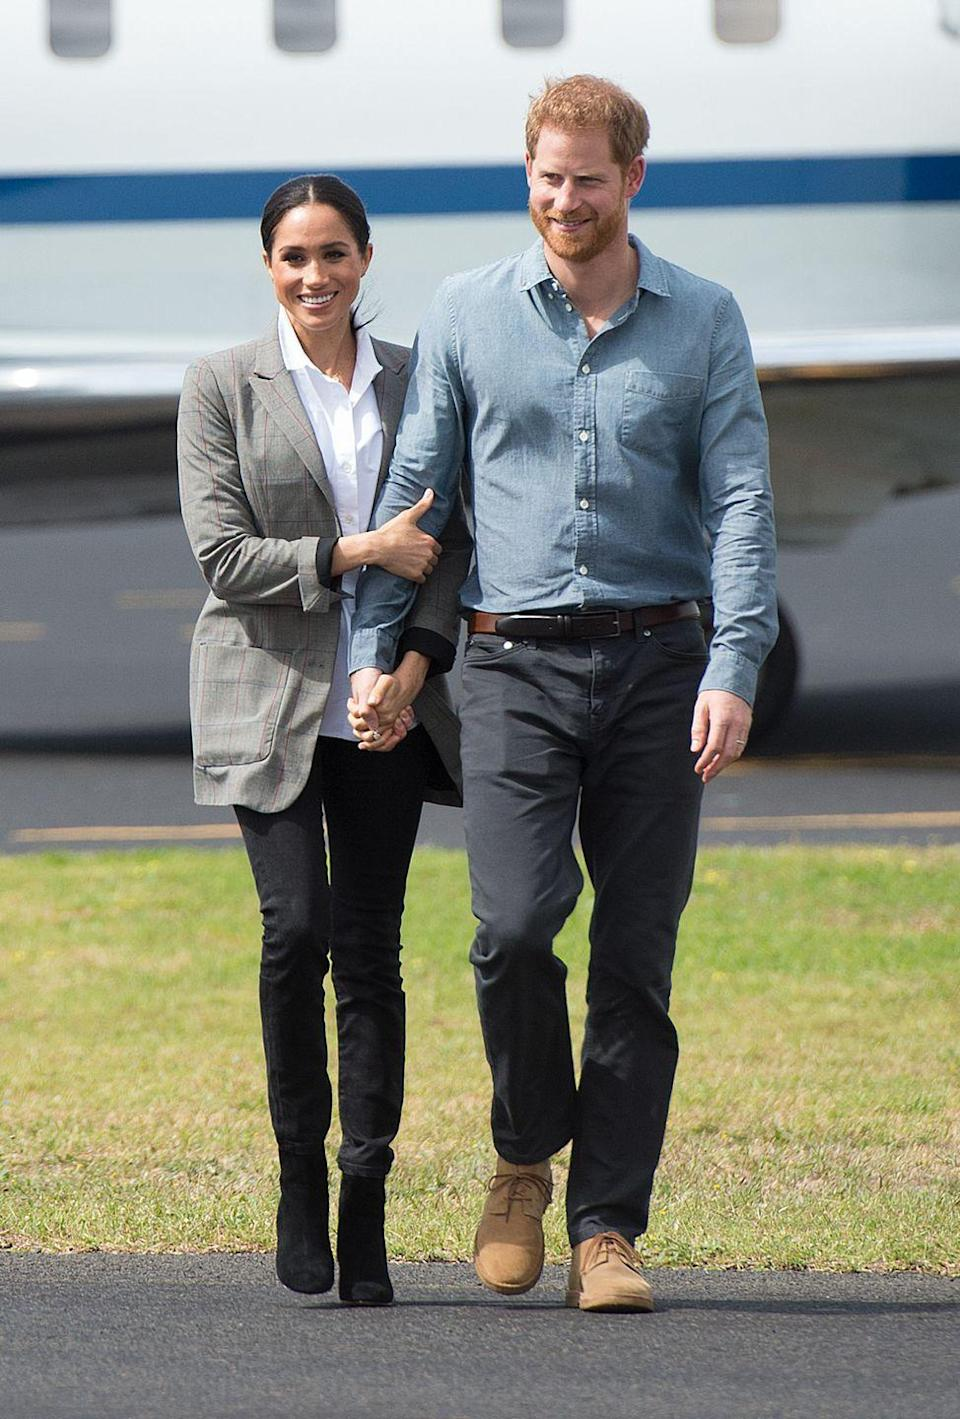 """<p>Harry and Meghan visited <a href=""""https://www.townandcountrymag.com/society/tradition/g23839991/prince-harry-meghan-markle-royal-tour-australia-day-2-photos/"""" rel=""""nofollow noopener"""" target=""""_blank"""" data-ylk=""""slk:Dubbo on day two"""" class=""""link rapid-noclick-resp"""">Dubbo on day two</a> of their royal tour. For this visit, <a href=""""https://www.townandcountrymag.com/style/fashion-trends/a23842614/meghan-markle-serena-williams-blazer-royal-tour-australia-day-2/"""" rel=""""nofollow noopener"""" target=""""_blank"""" data-ylk=""""slk:Meghan wore a"""" class=""""link rapid-noclick-resp"""">Meghan wore a</a> plaid blazer from <a href=""""https://www.serenawilliams.com/collections/outerwear/products/boss-oversized-blazer"""" rel=""""nofollow noopener"""" target=""""_blank"""" data-ylk=""""slk:her close friend Serena Williams's line"""" class=""""link rapid-noclick-resp"""">her close friend Serena Williams's line</a> over a button-down shirt by Maison Kitsune, black pants from Australian <a href=""""https://outlanddenim.com/products/harriet-in-black"""" rel=""""nofollow noopener"""" target=""""_blank"""" data-ylk=""""slk:brand Outland"""" class=""""link rapid-noclick-resp"""">brand Outland</a>, black boots from J.Crew. The Duchess also wore a pair of diamond earring by <a href=""""https://adinareyter.com/collections/earrings/products/3-diamond-amigos-curve-posts"""" rel=""""nofollow noopener"""" target=""""_blank"""" data-ylk=""""slk:Adina Reyter"""" class=""""link rapid-noclick-resp"""">Adina Reyter</a>.</p><p><a class=""""link rapid-noclick-resp"""" href=""""https://go.redirectingat.com?id=74968X1596630&url=https%3A%2F%2Fwww.jcrew.com%2Fp%2Fwomens_category%2Fshoes%2Fboots%2Fsadie-ankle-boots%2FK0039%3Fcolor_name%3Dmelted-caramel&sref=https%3A%2F%2Fwww.townandcountrymag.com%2Fstyle%2Ffashion-trends%2Fg3272%2Fmeghan-markle-preppy-style%2F"""" rel=""""nofollow noopener"""" target=""""_blank"""" data-ylk=""""slk:SHOP NOW"""">SHOP NOW </a><em>Sadie Ankle Boots by J.Crew, $178</em></p>"""